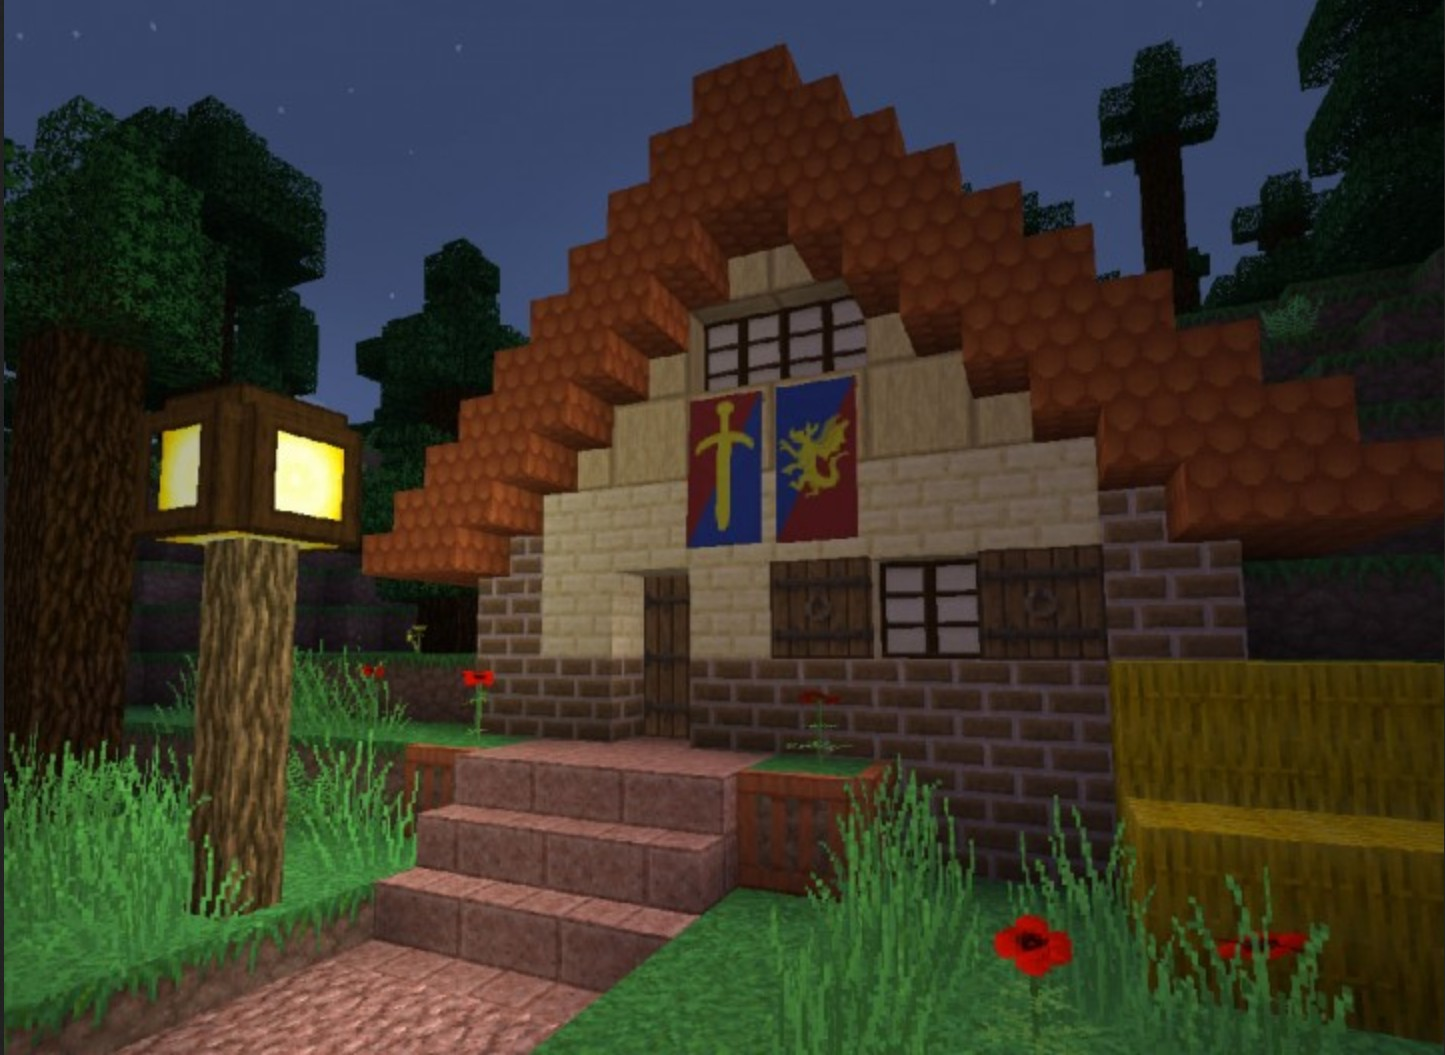 Top 10 Best Minecraft Texture Packs That Are Awesome